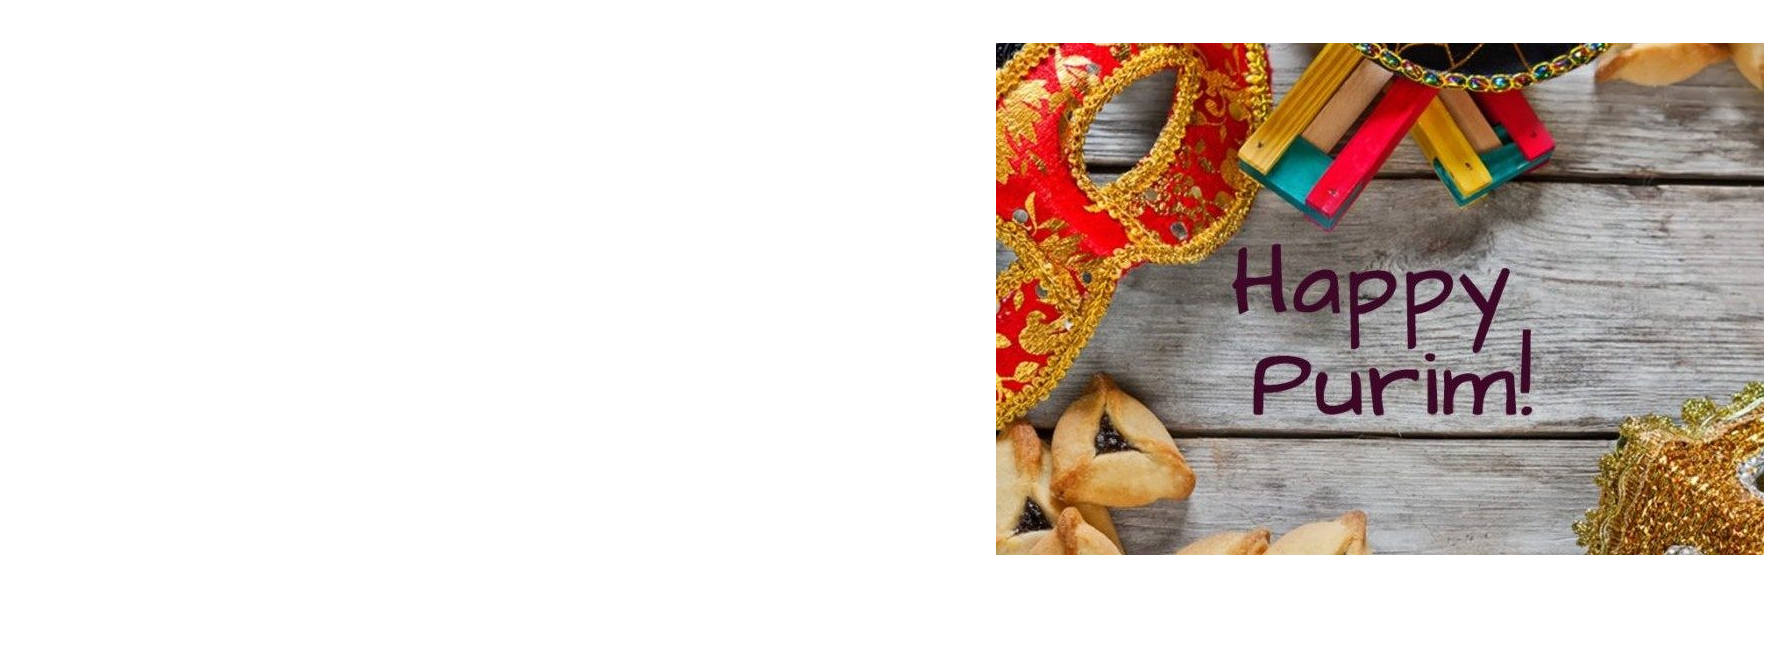 """<a href=""""https://www.brithshalom.org/purim2021mishloachmanot#""""                                     target="""""""">                                                                 <span class=""""slider_title"""">                                     Mishloach Manot 2021                                </span>                                                                 </a>                                                                                                                                                                                      <a href=""""https://www.brithshalom.org/purim2021mishloachmanot#"""" class=""""slider_link""""                             target="""""""">                             click here for more information                            </a>"""